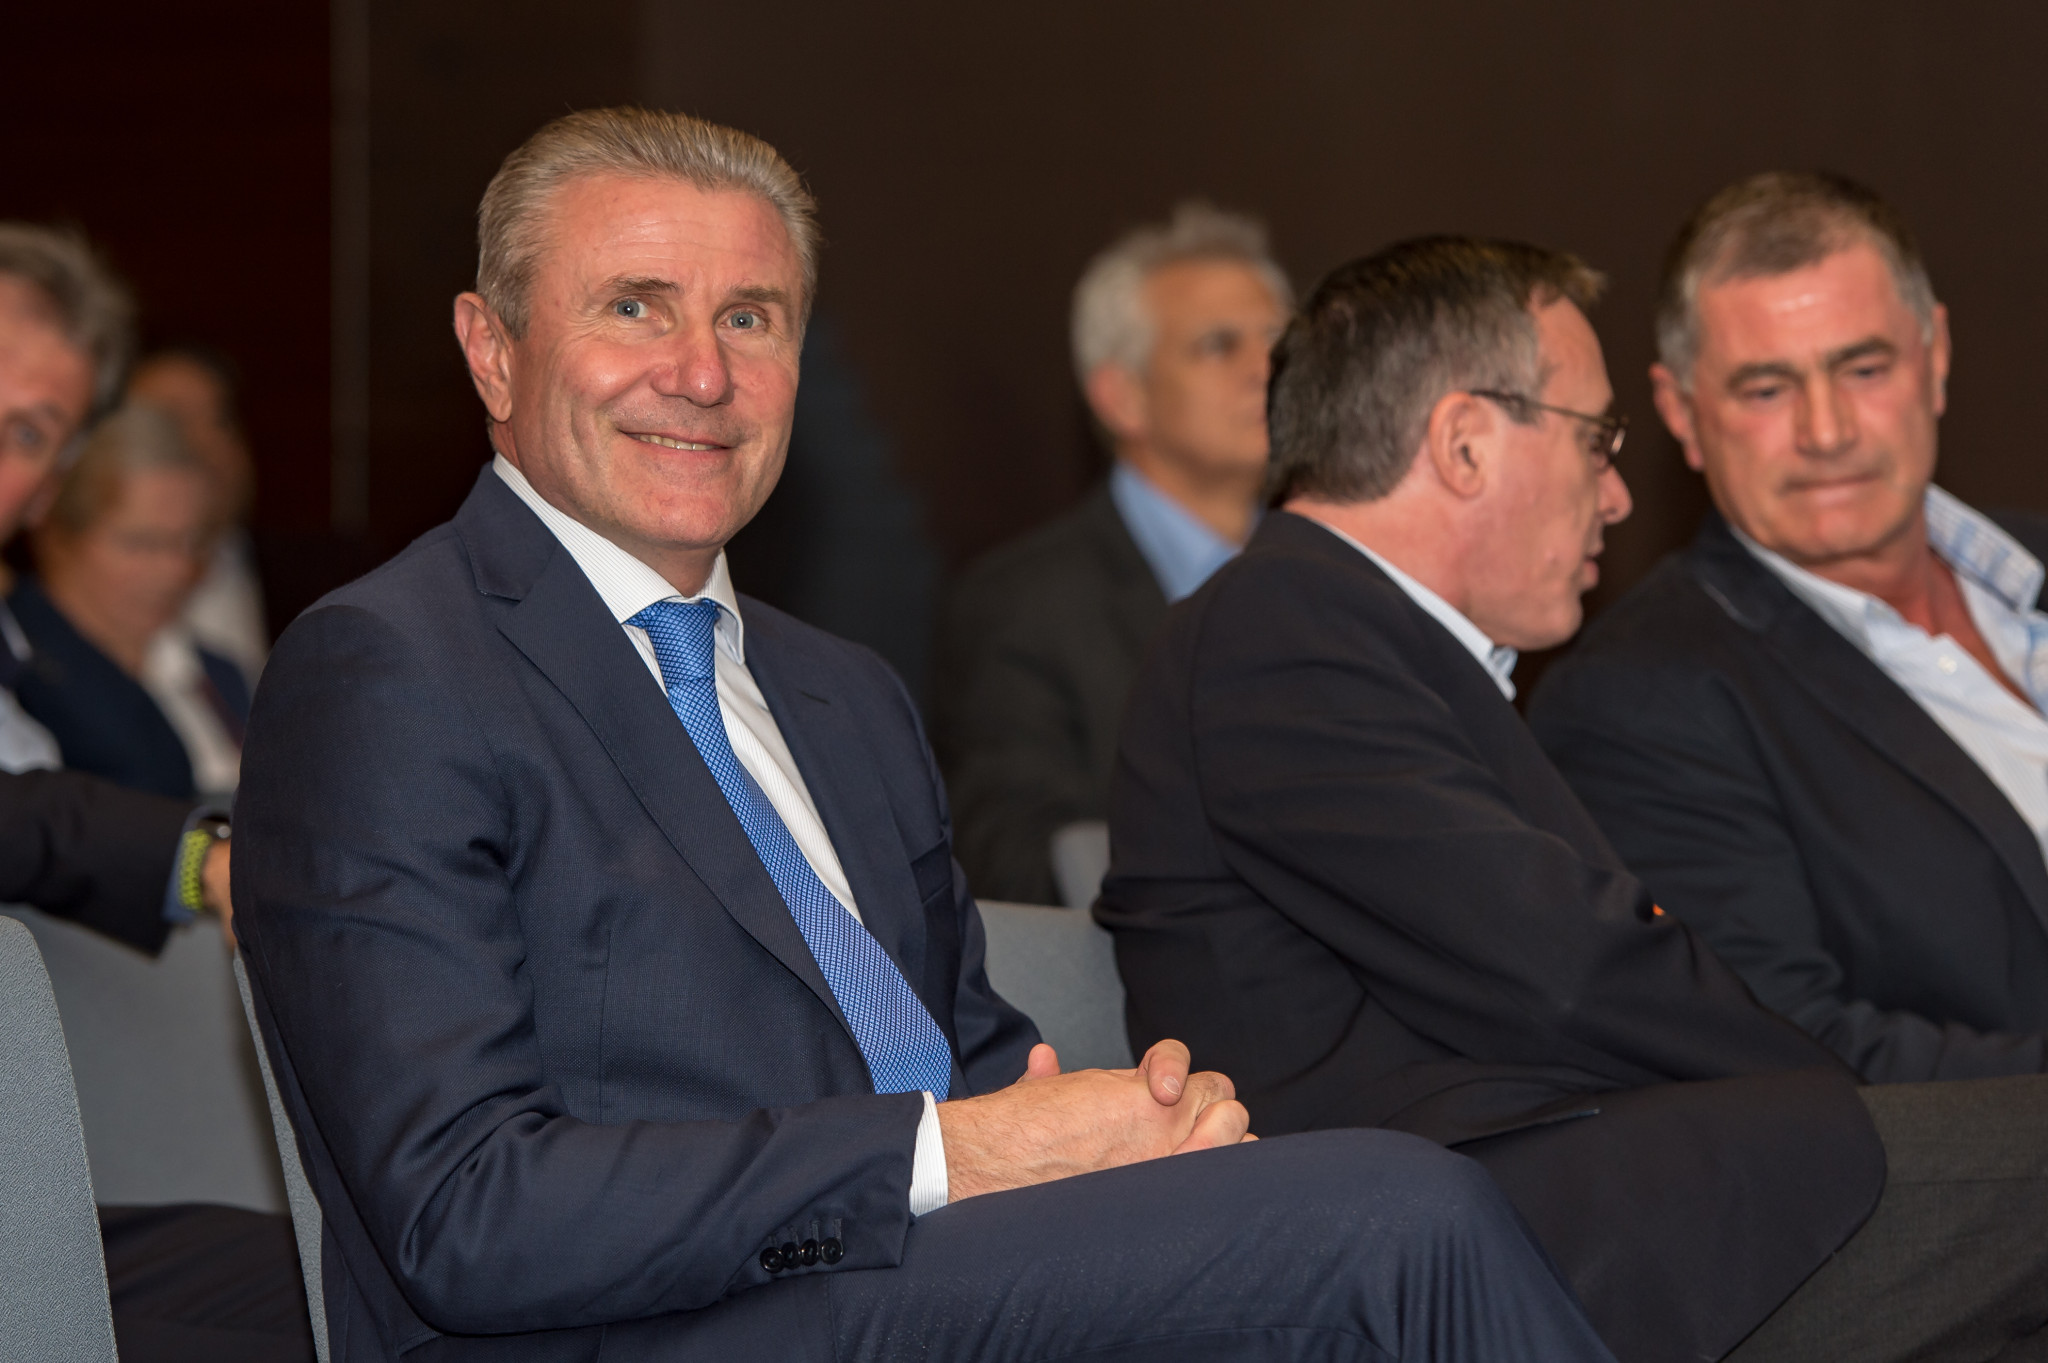 Sergey Bubka has rejected allegations he was bribed to vote for Rio de Janeiro to host the 2016 Olympic and Paralympic Games ©Getty Images